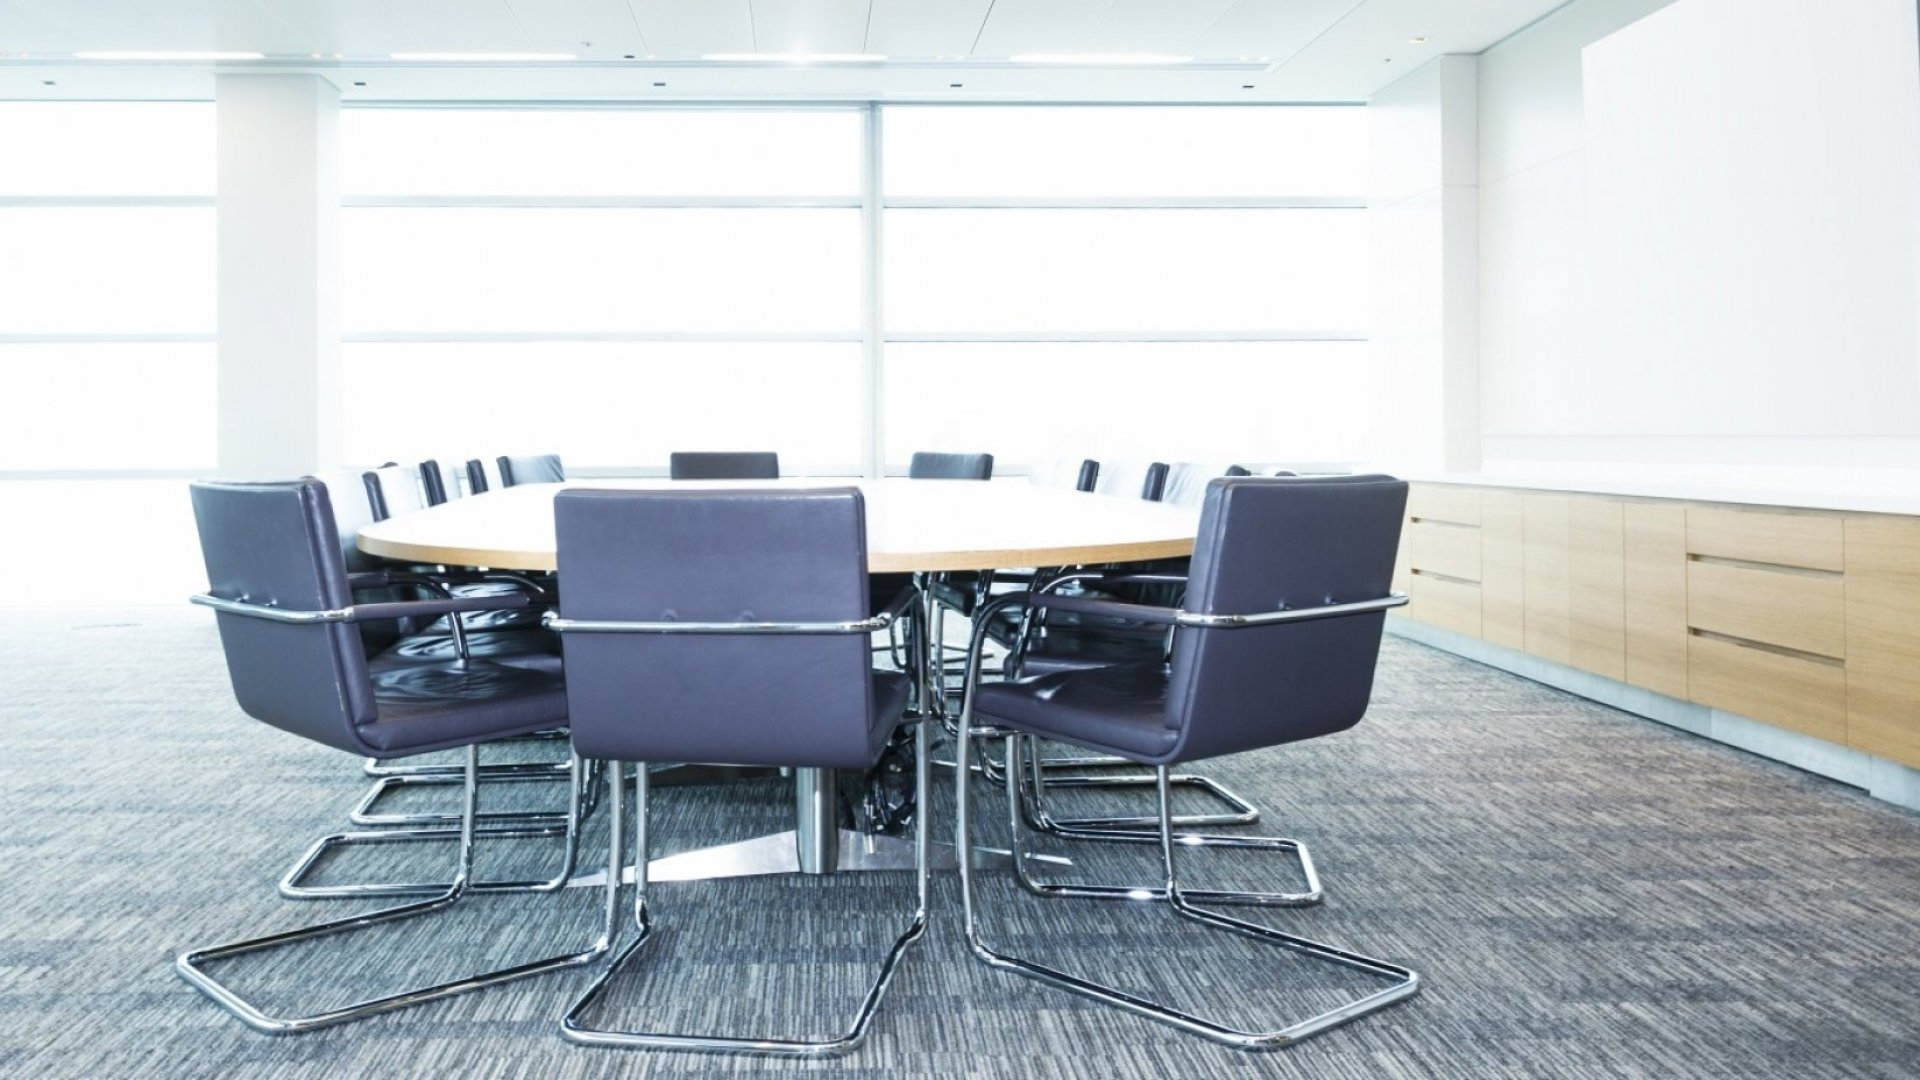 6 Things to Look for When Picking Your Company's Board of Directors